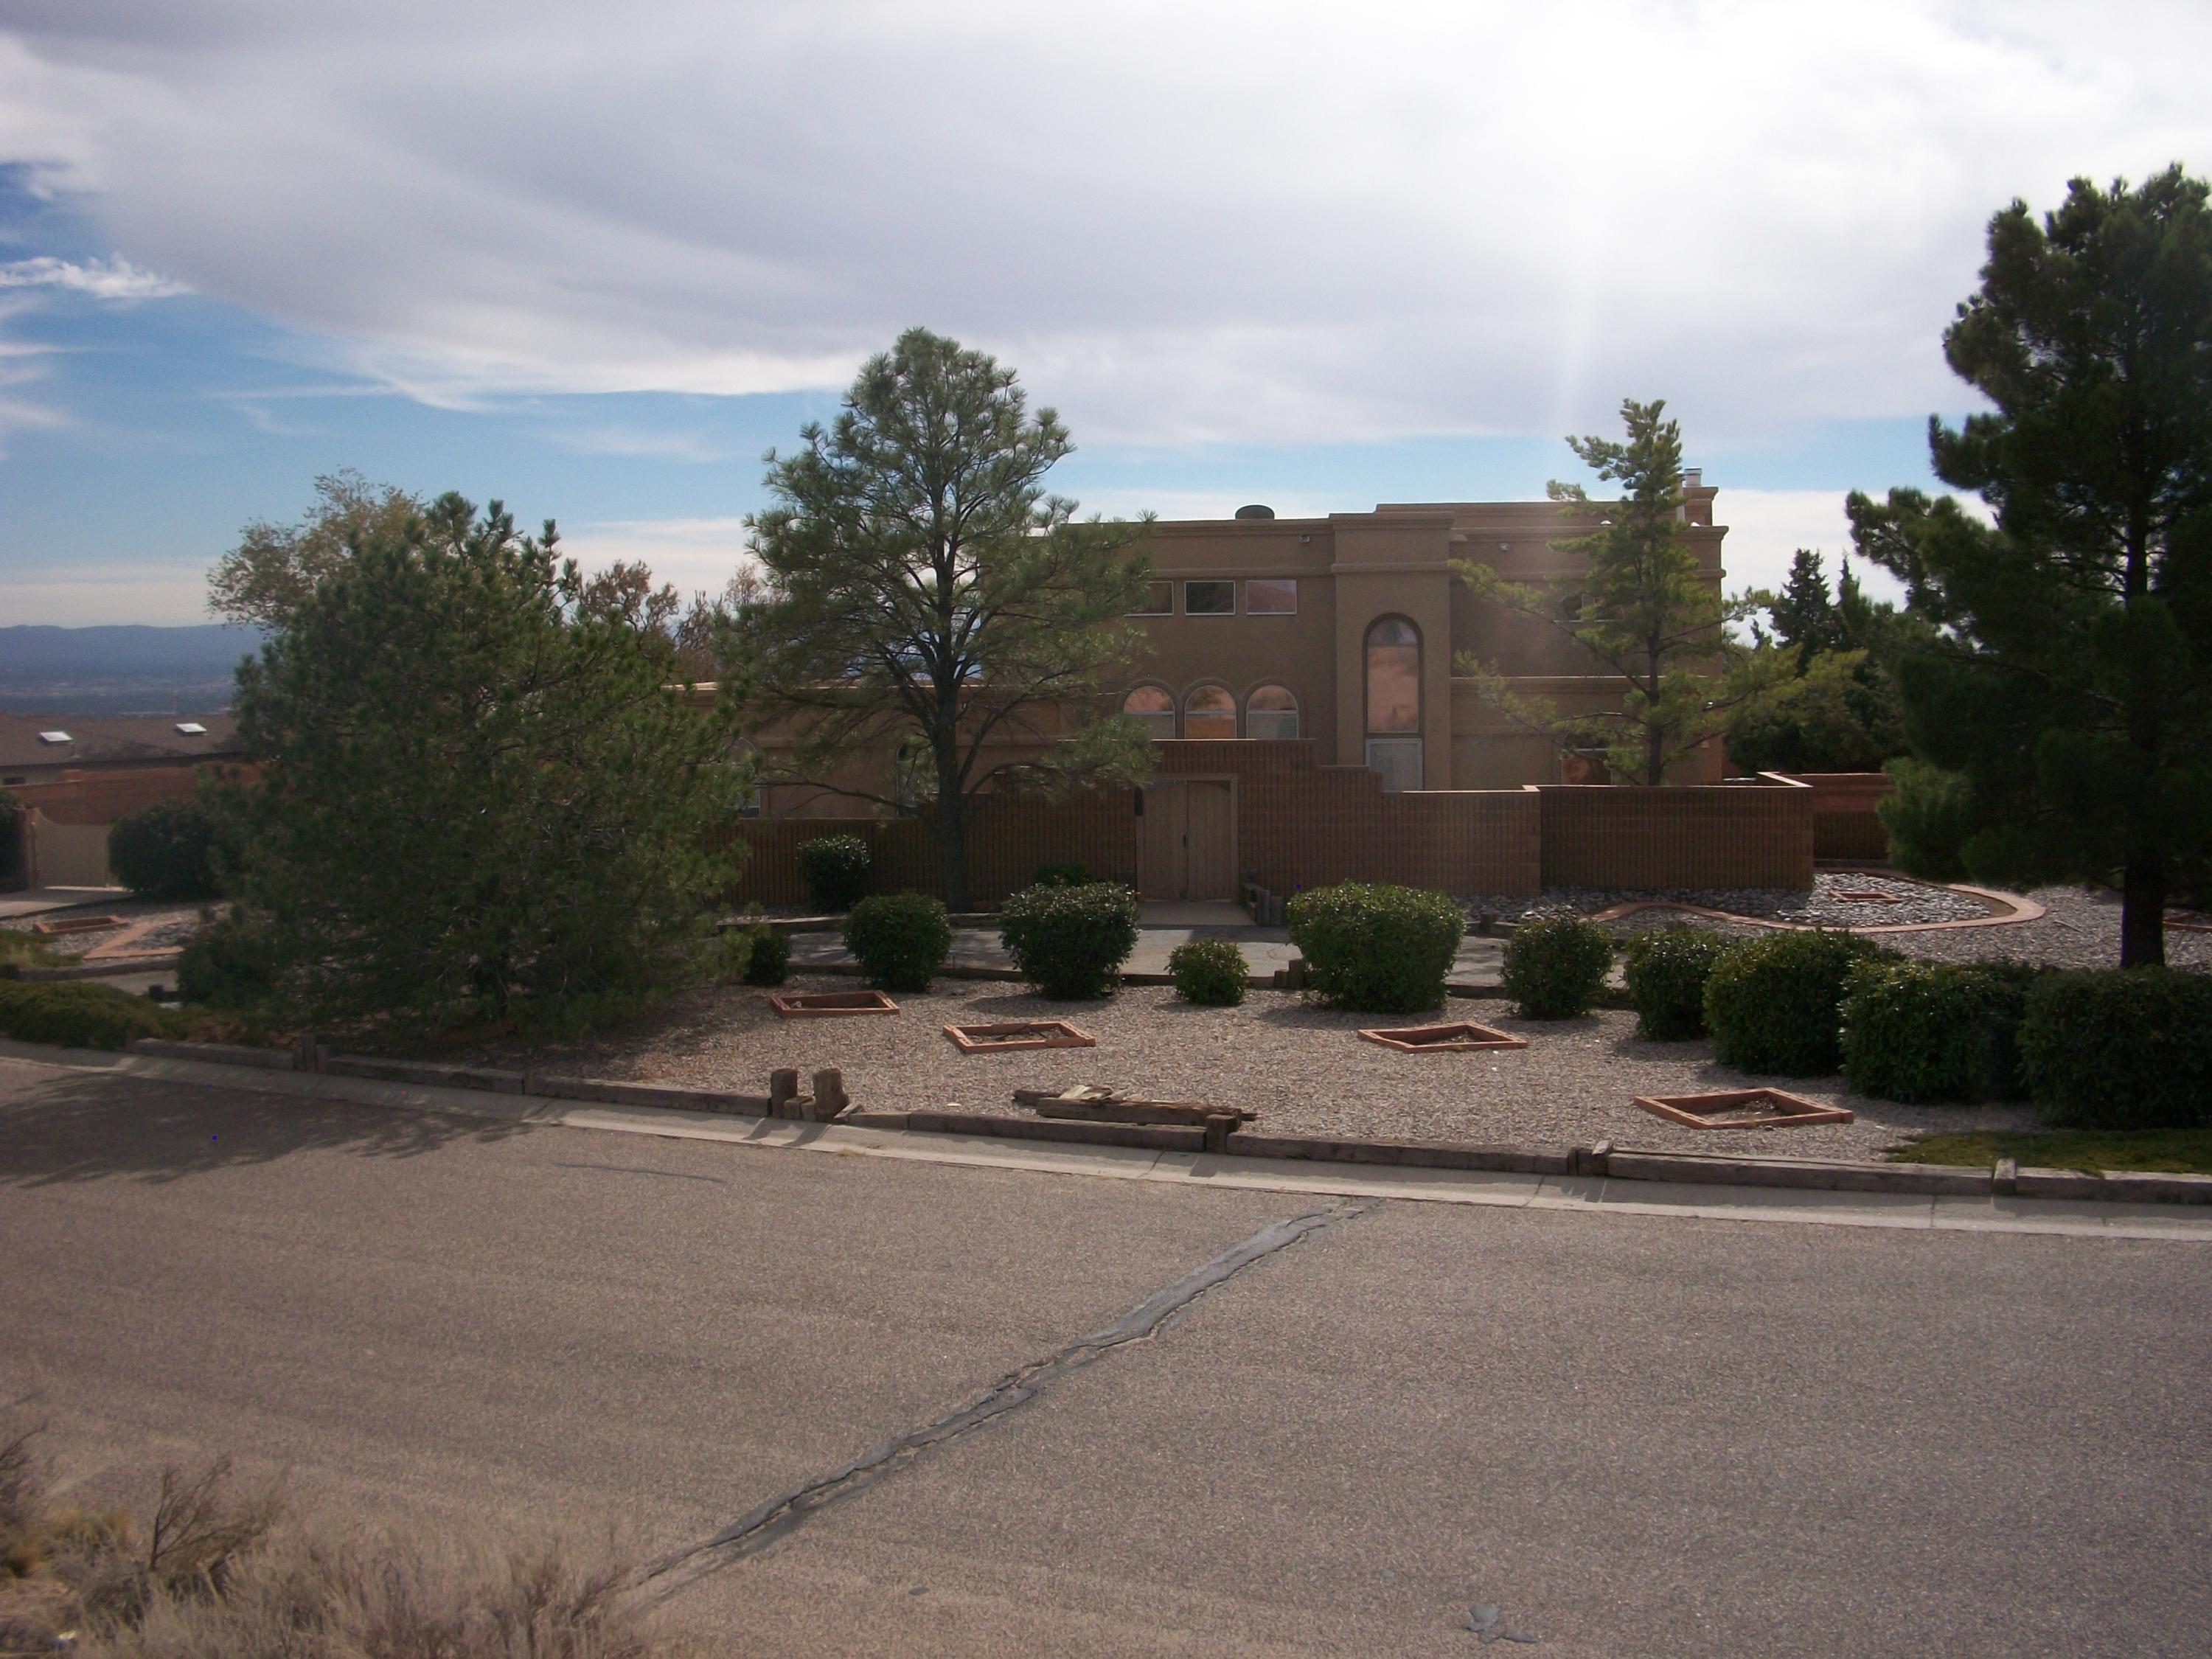 Over 2,500 square feet of eloquence! This beautiful one of a kind home comes with a breathtaking view of the Sandia Mountains and Albuquerque city lights. Over 1/2 acre of mature landscaping make this home feel like your own slice of paradise. The beautiful chandelier greets you at the entrance, with over 12 foot ceilings. All three bedrooms have their own full bath with a half bath on the main floor. Plenty of room to entertain with two separate dining rooms, the 600 square foot basement makes a perfect game room. The refrigerant AC, and furnace installed April, 2020 come with a transferable 10 year warranty. The home has an optional transferable warranty on all the appliances, plumbing, electrical system, and roof for a monthly fee. Beautiful new tile inside and outside. The patio has new